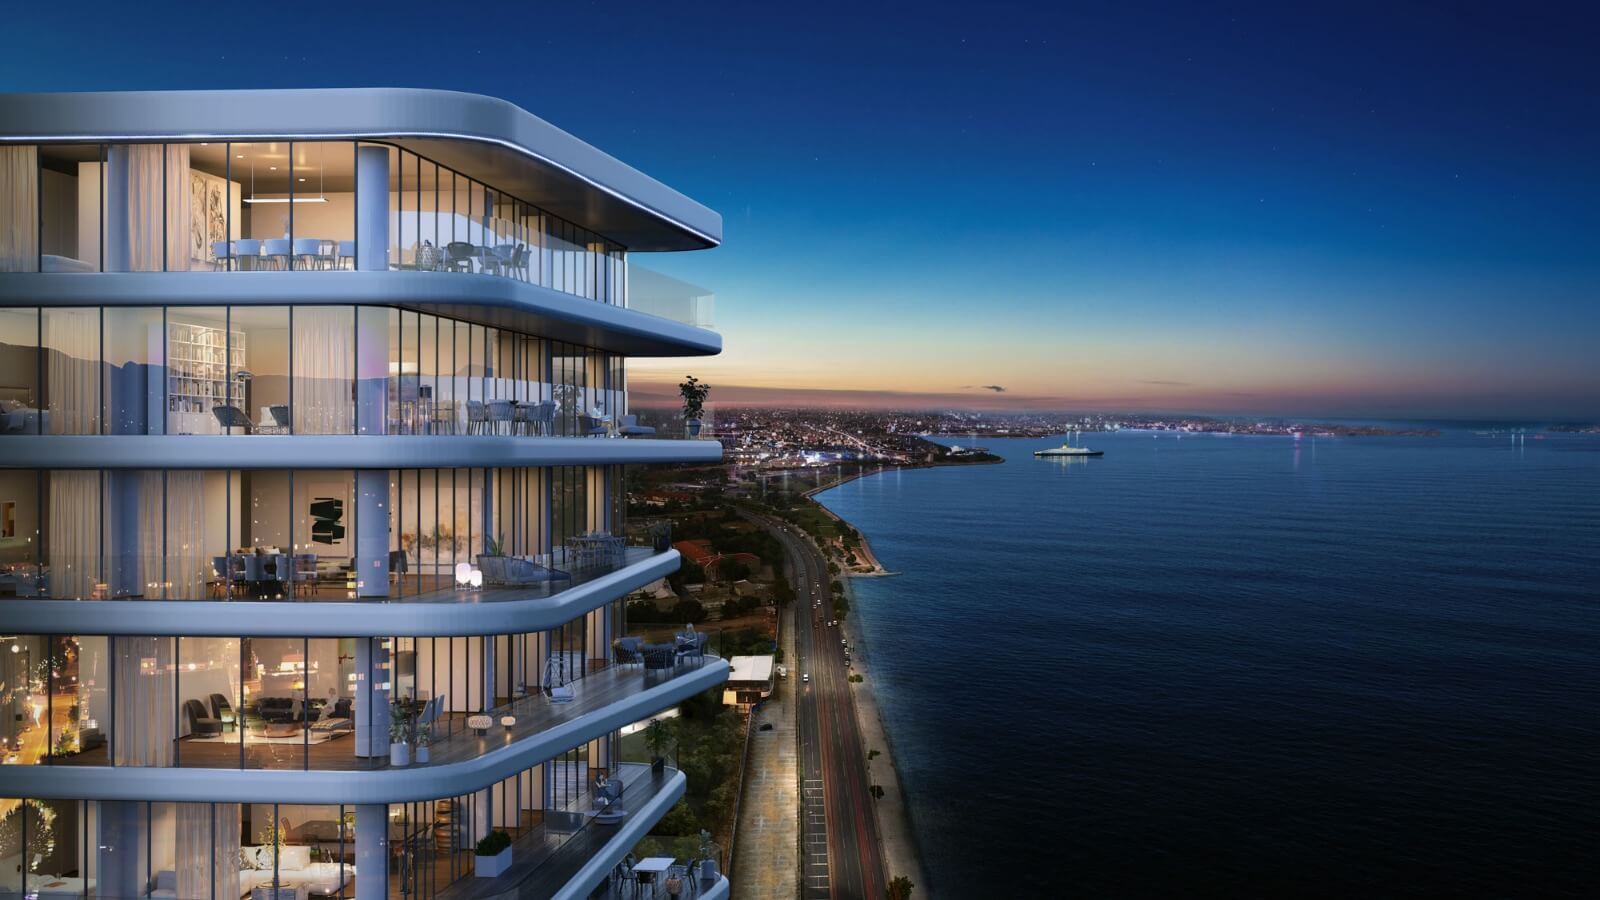 istanbul-zeytinburnu-seaview-vip-residential-projects-exterior (1)